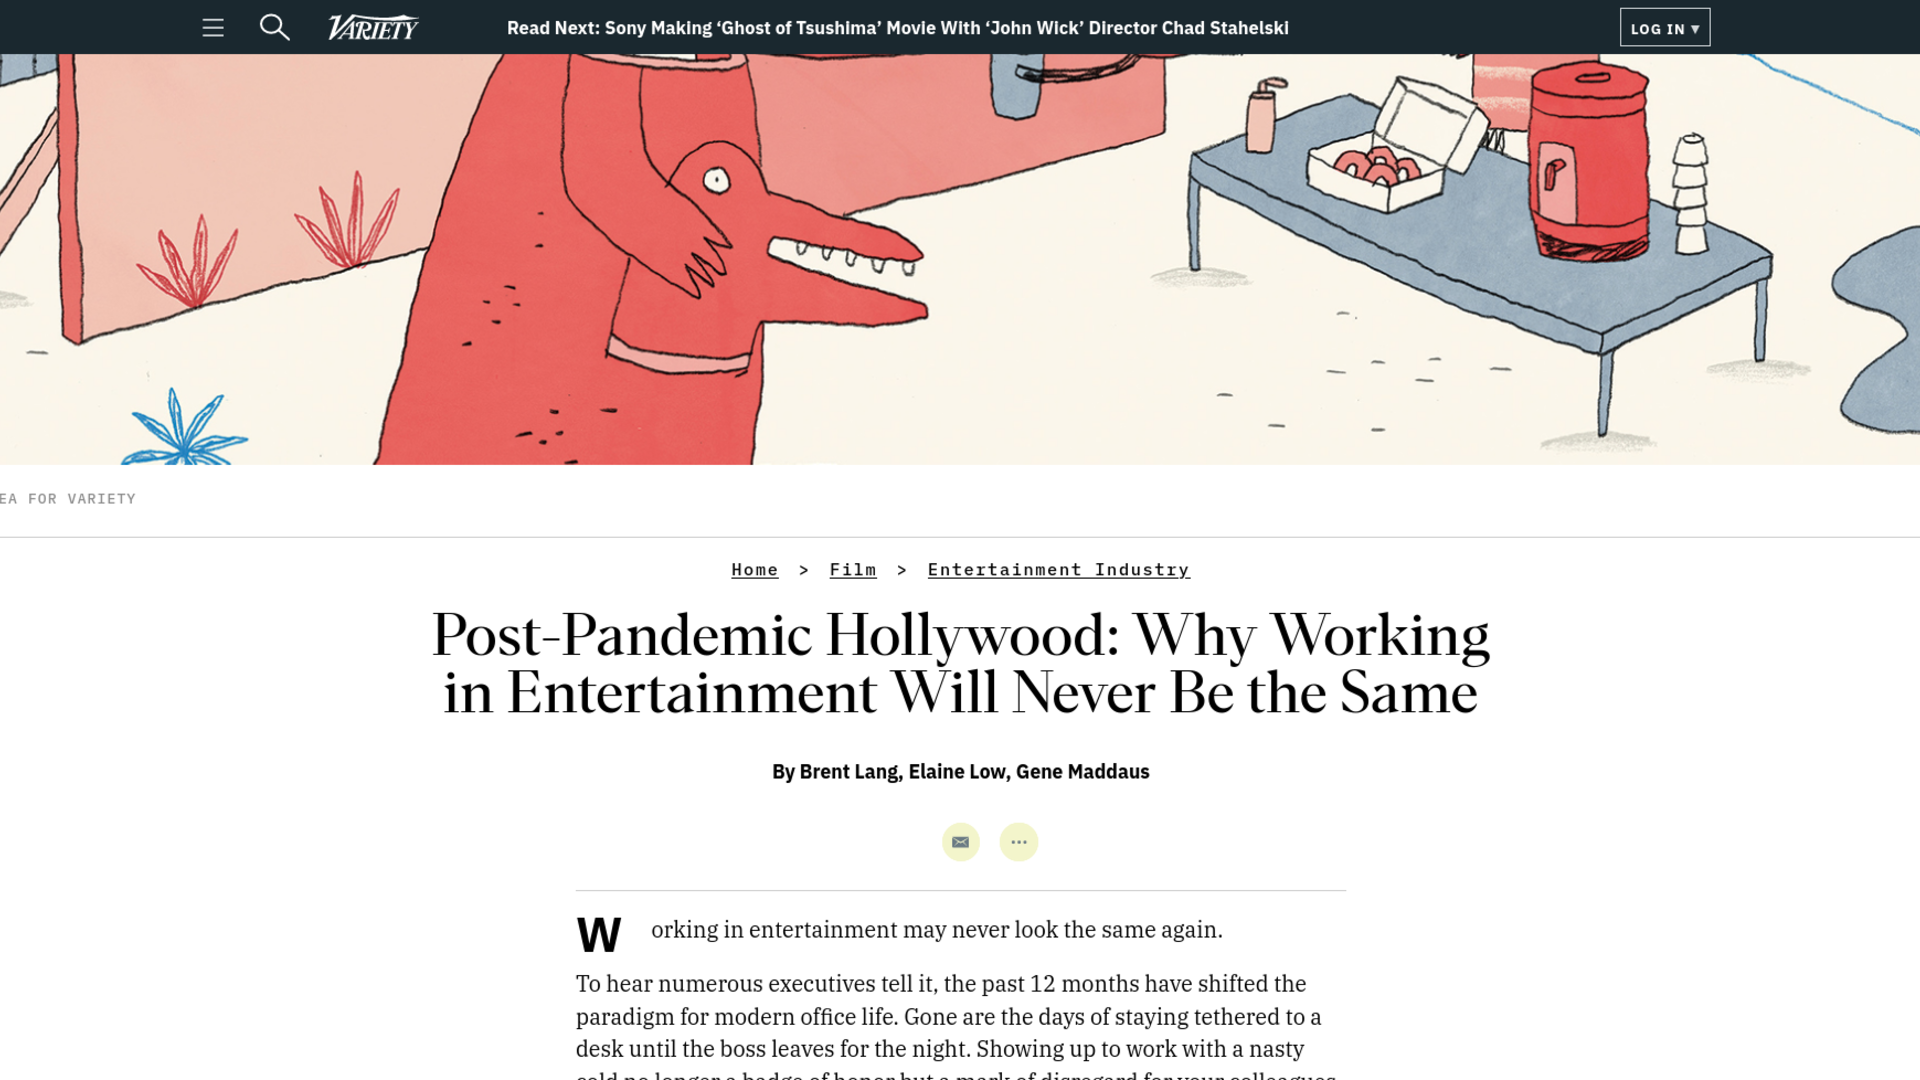 Fairness Rocks News Post-Pandemic Hollywood: Why Working in Entertainment Will Never Be the Same